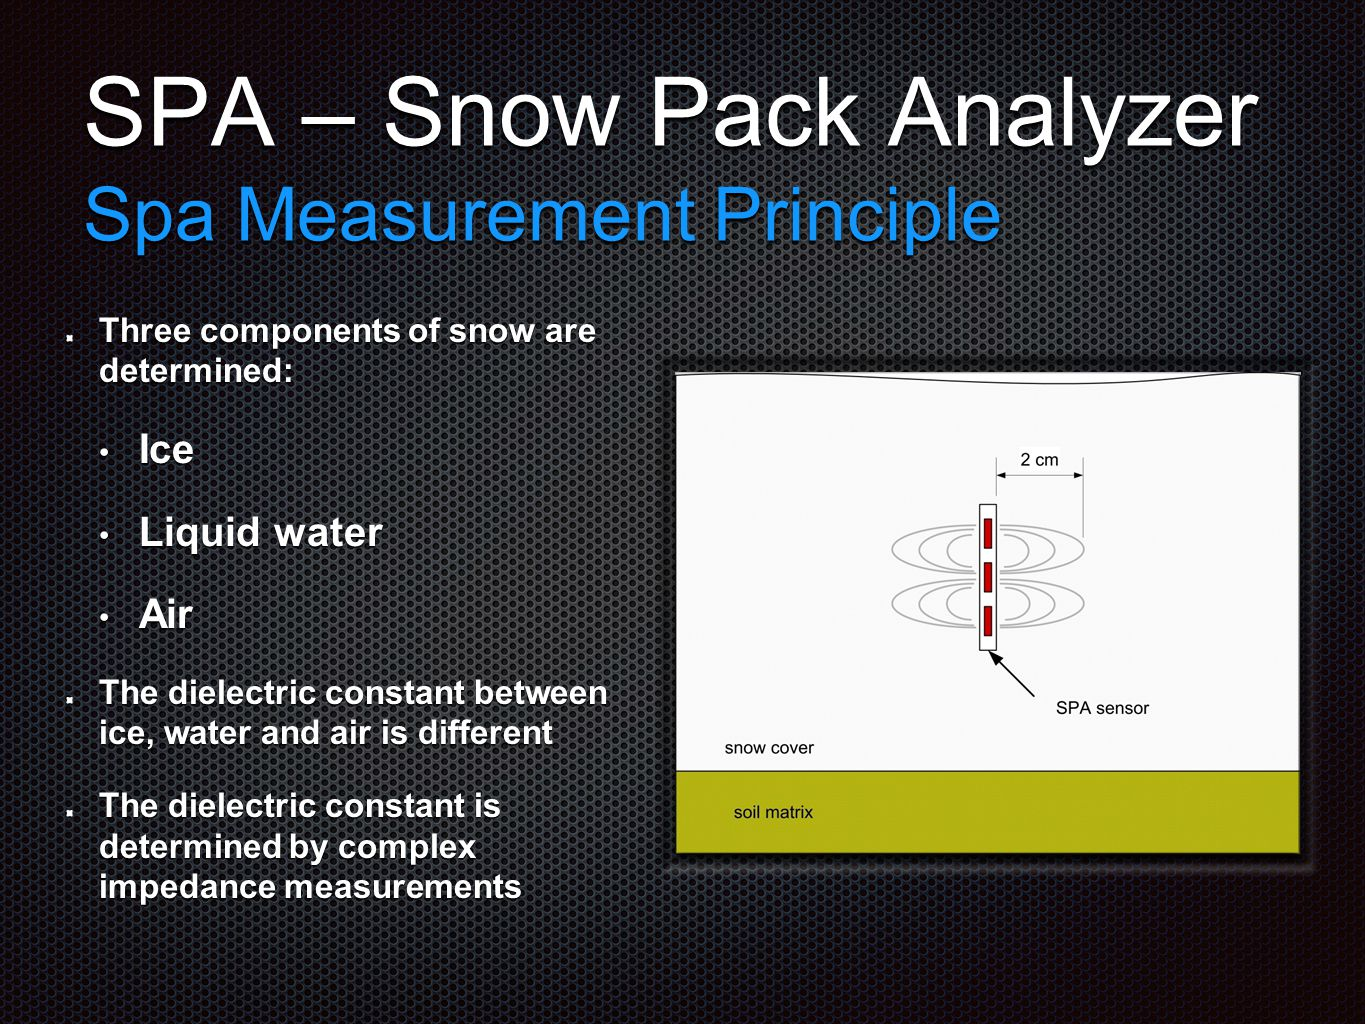 SPA – Snow Pack Analyzer Spa Measurement Principle Three components of snow are determined: Ice Ice Liquid water Liquid water Air Air The dielectric constant between ice, water and air is different The dielectric constant is determined by complex impedance measurements